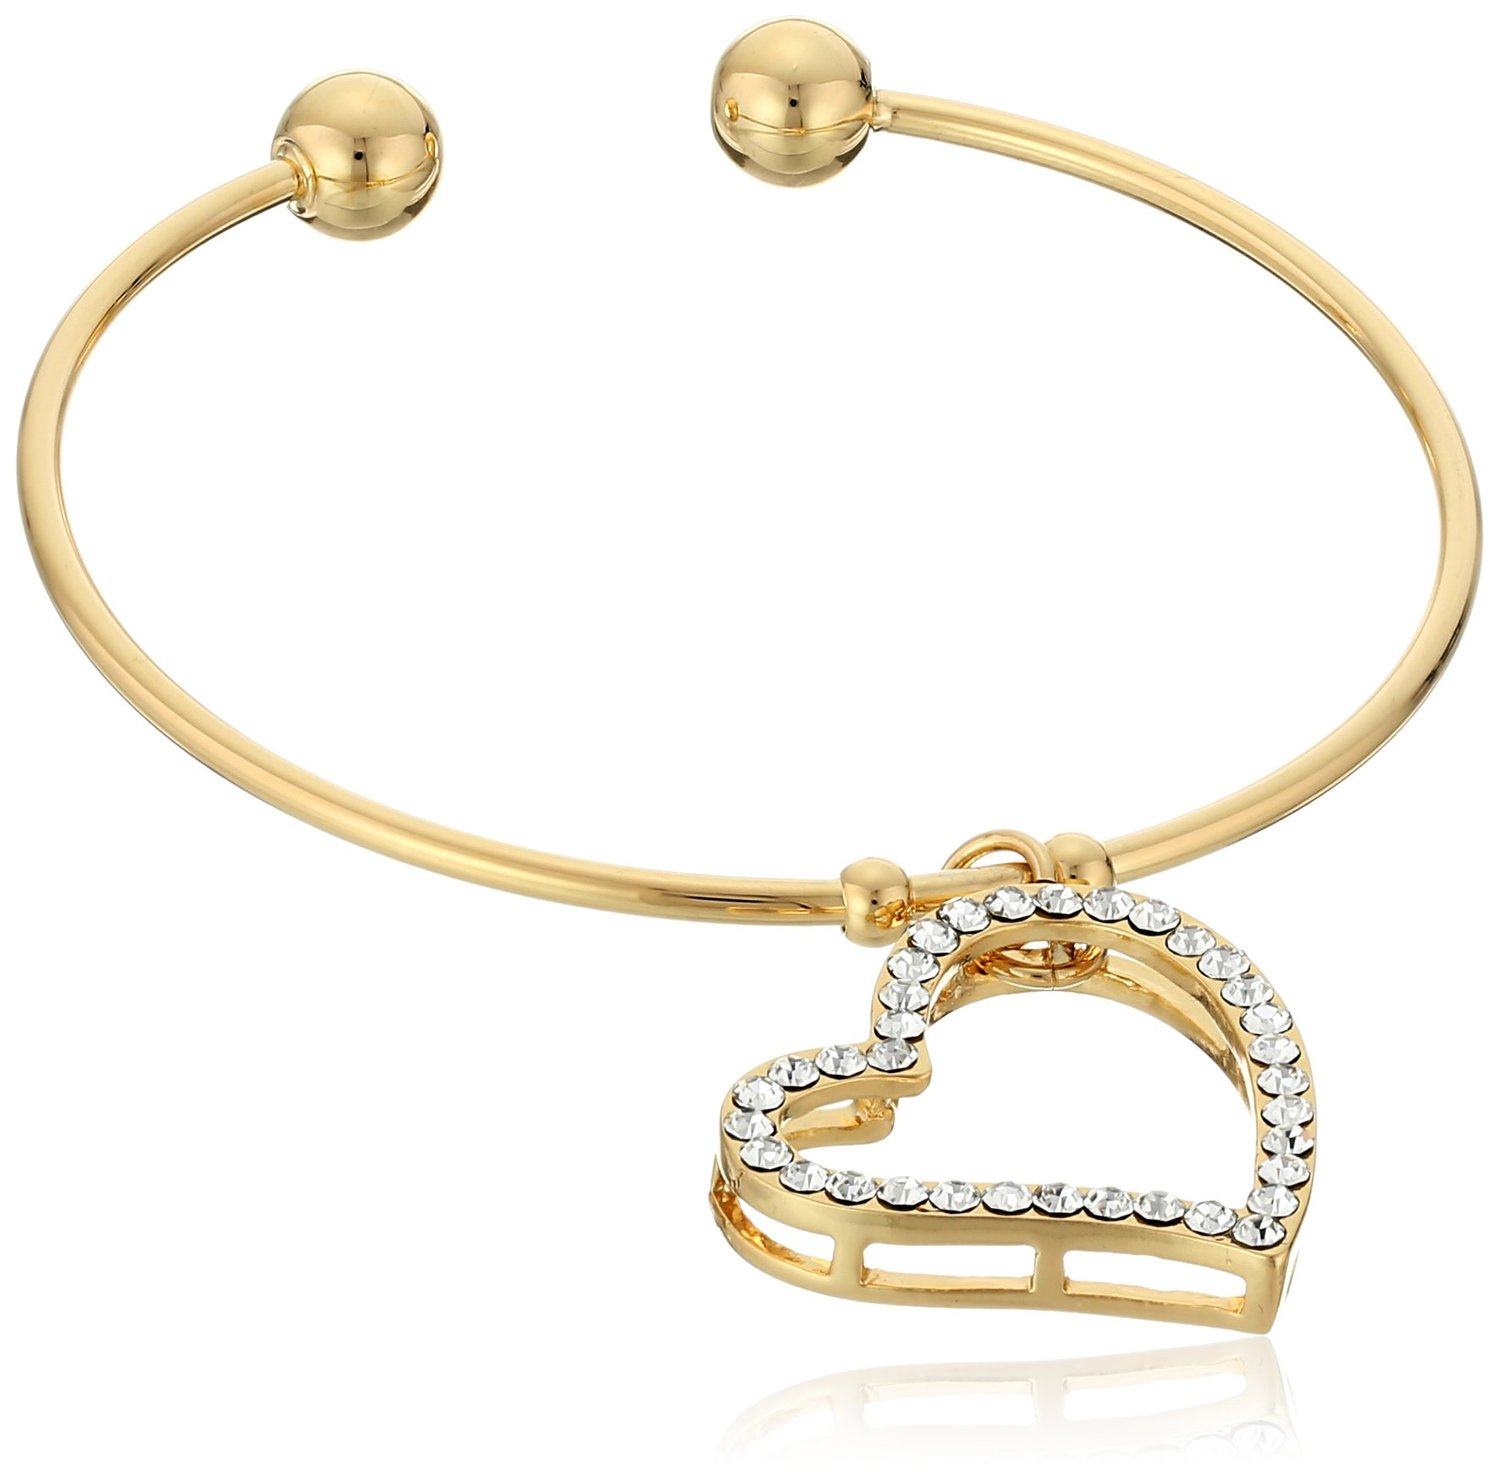 bracelets j open love l cuff rose org bracelet jewelry bangles for gold bangle at sale id cartier